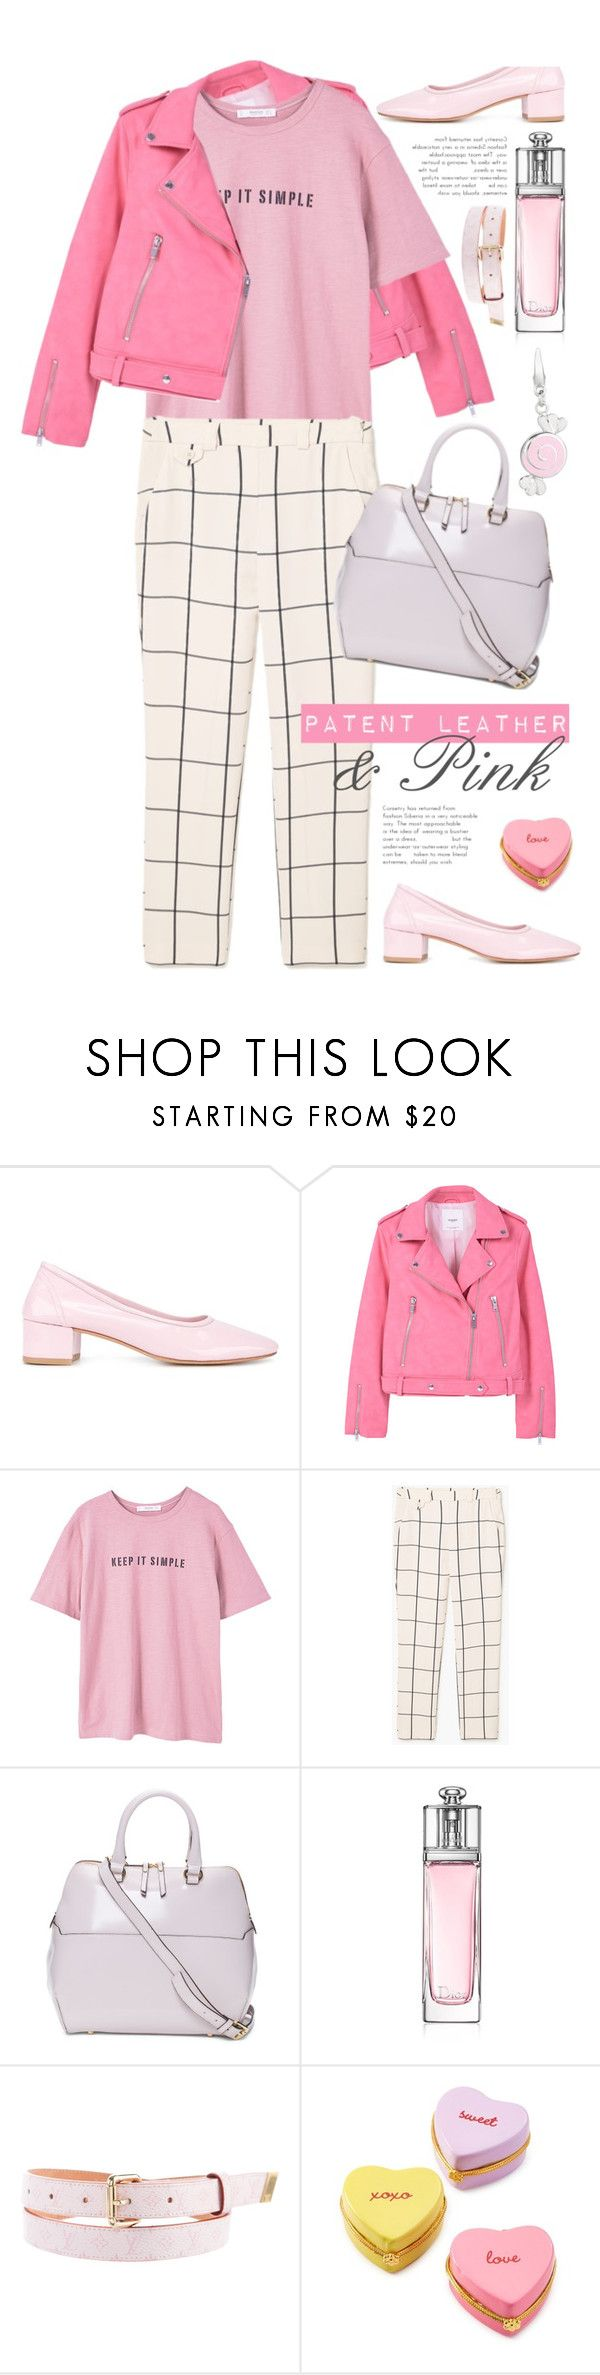 """""""Candy Shop"""" by vazsu ❤ liked on Polyvore featuring Maryam Nassir Zadeh, MANGO, Christian Dior, Louis Vuitton, Two's Company and patentleather"""